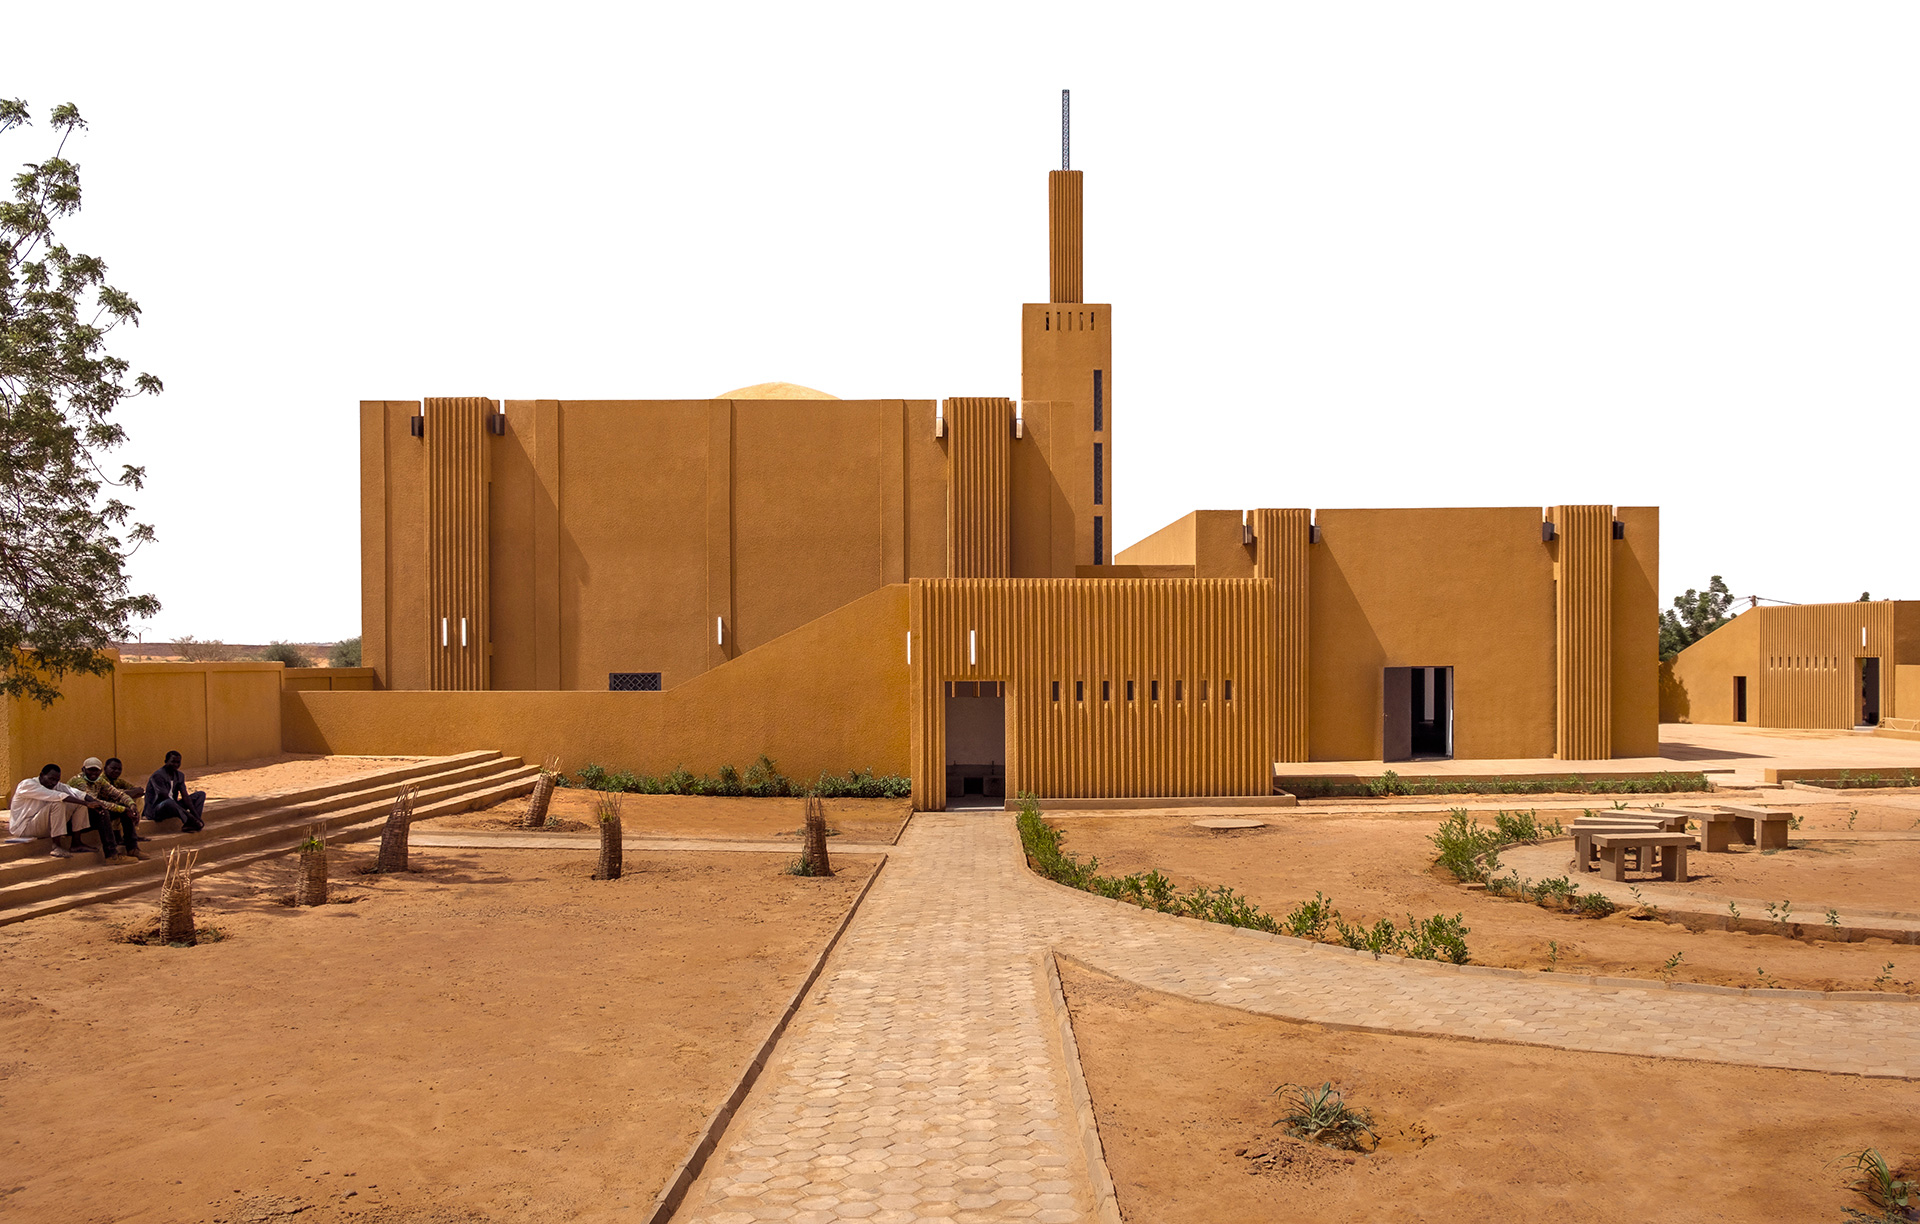 Religious Secular Complex at Dandaji, Niger, completed 2018 by Atelier Massomi, contender for RA Dorfman Award | Mariam Kamara | Atelier Massomi| Royal Academy of Arts Architecture Awards| STIR